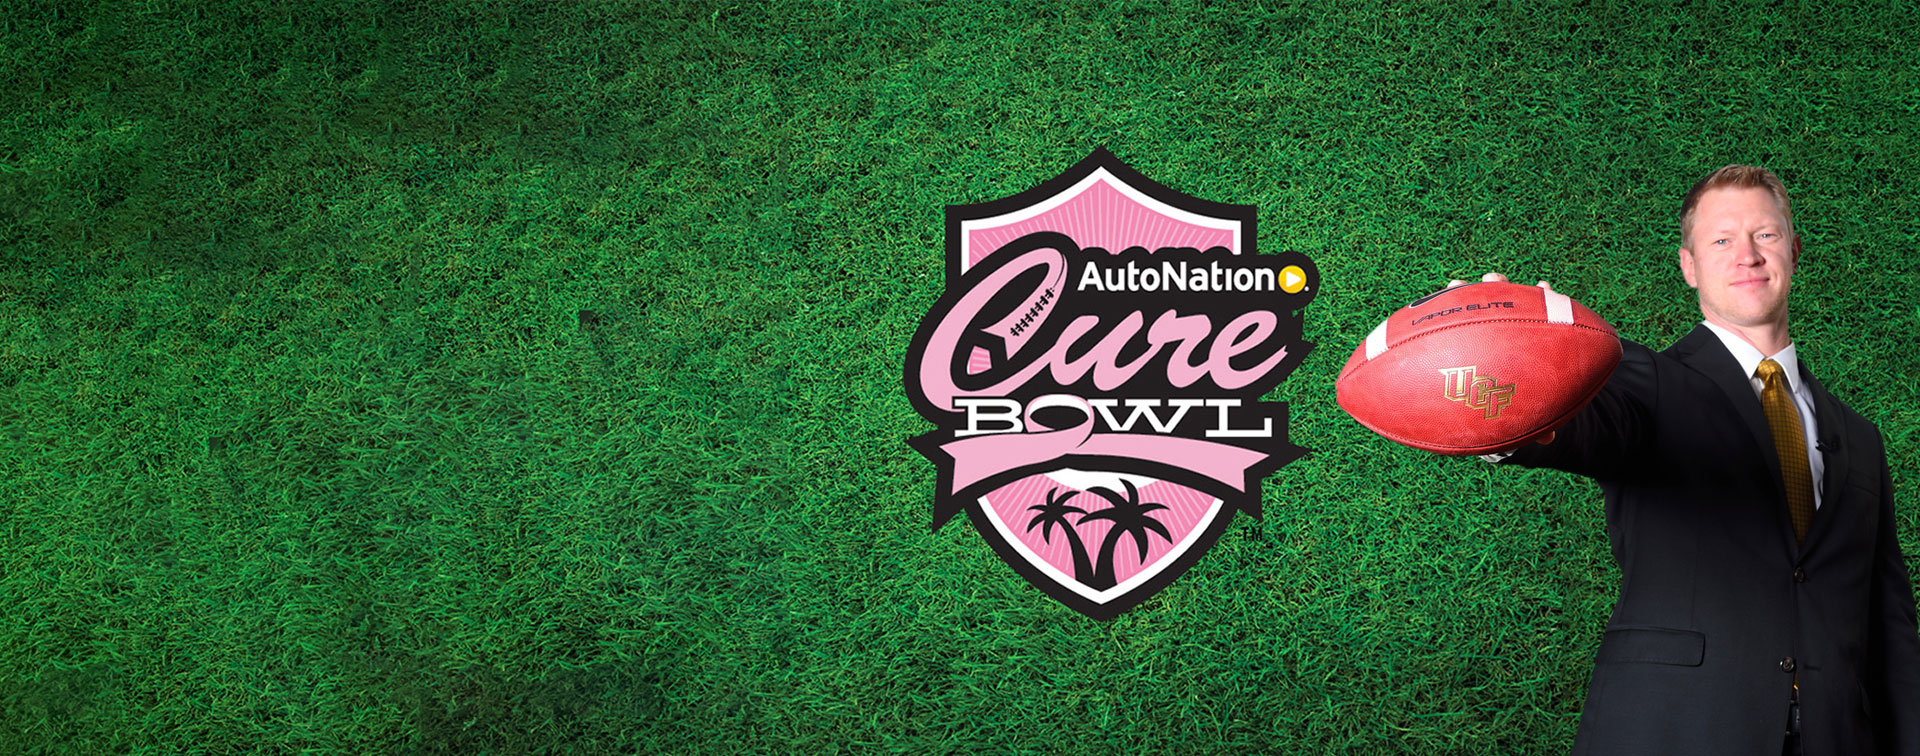 UCF Knights Heading to AutoNation Cure Bowl